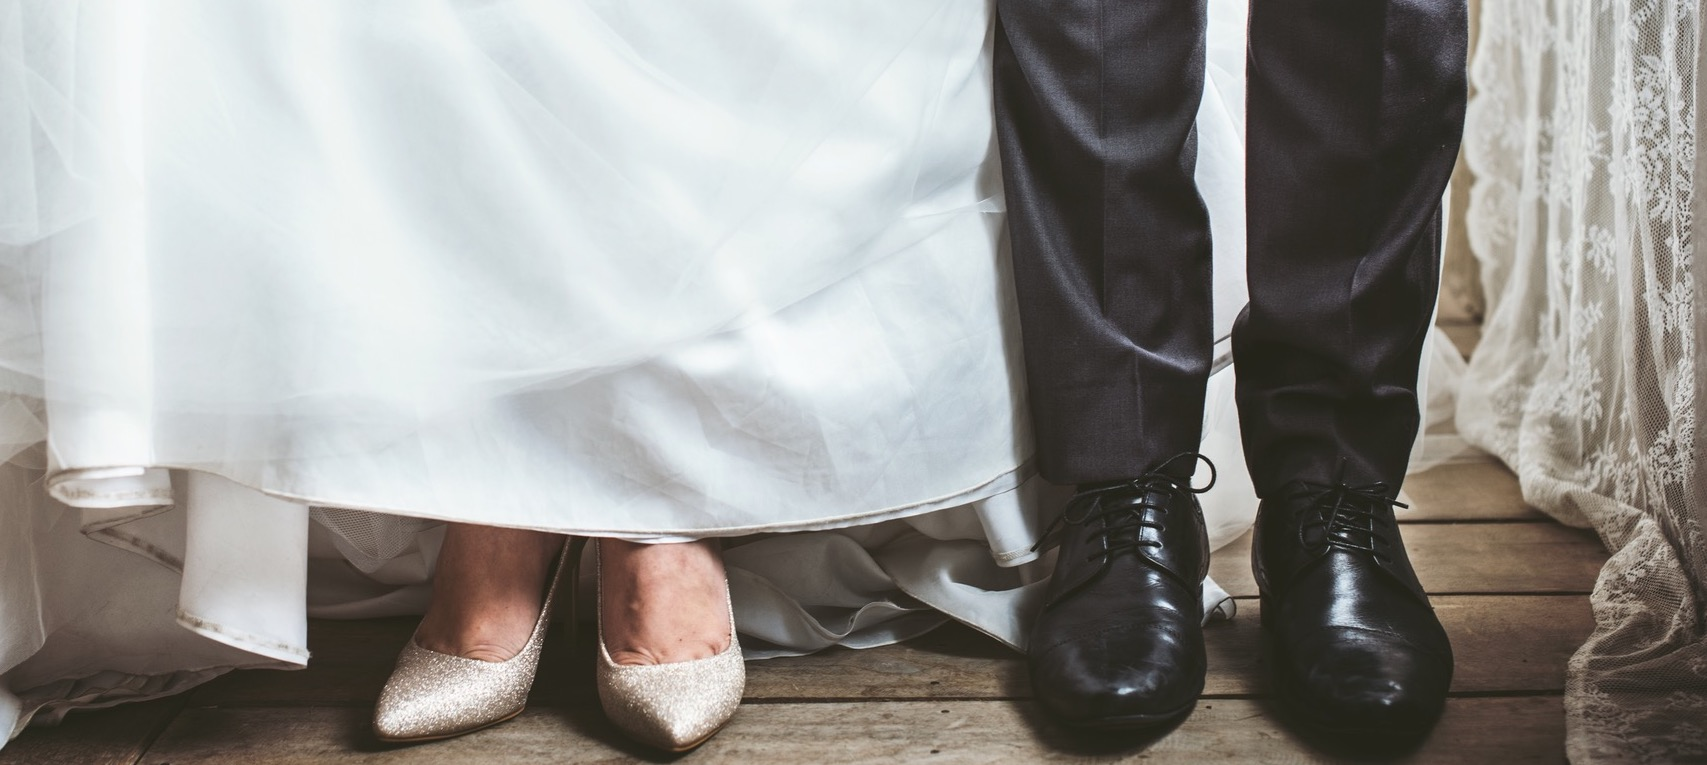 The feet of a bride and a groom